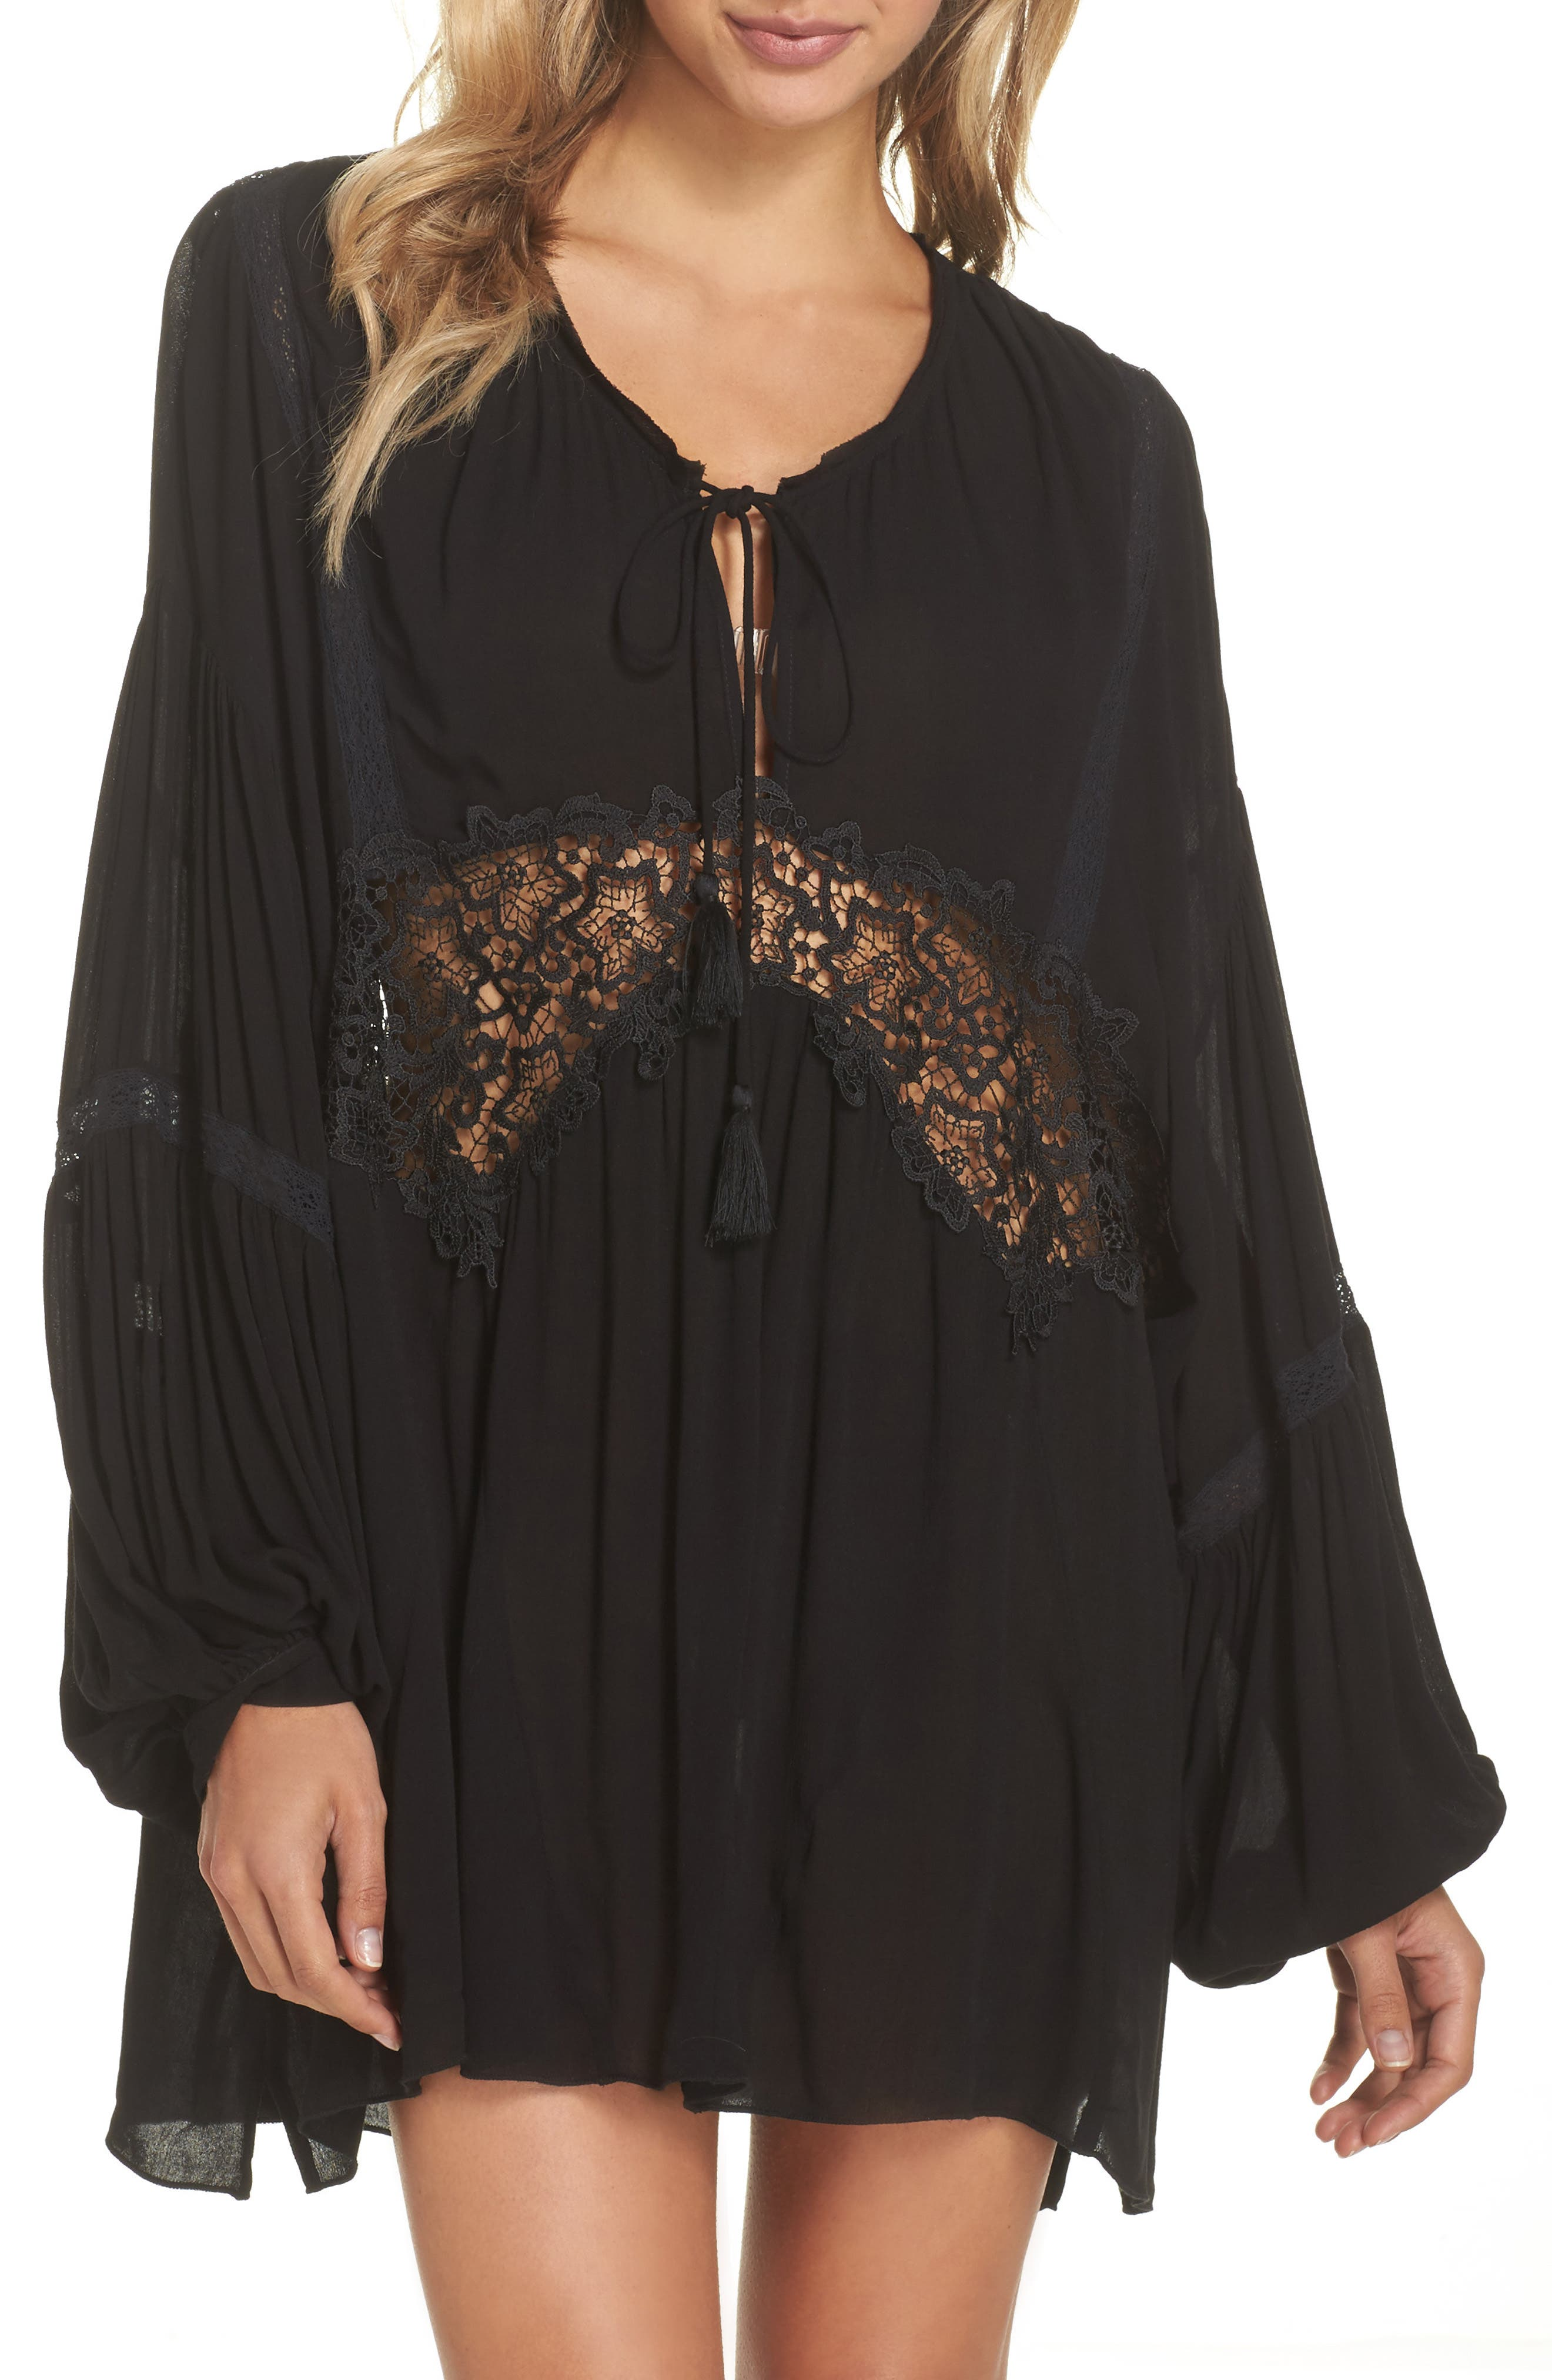 Main Image - Free People Intimately FP Sleepin' 'n' Dreamin' Lace Inset Top